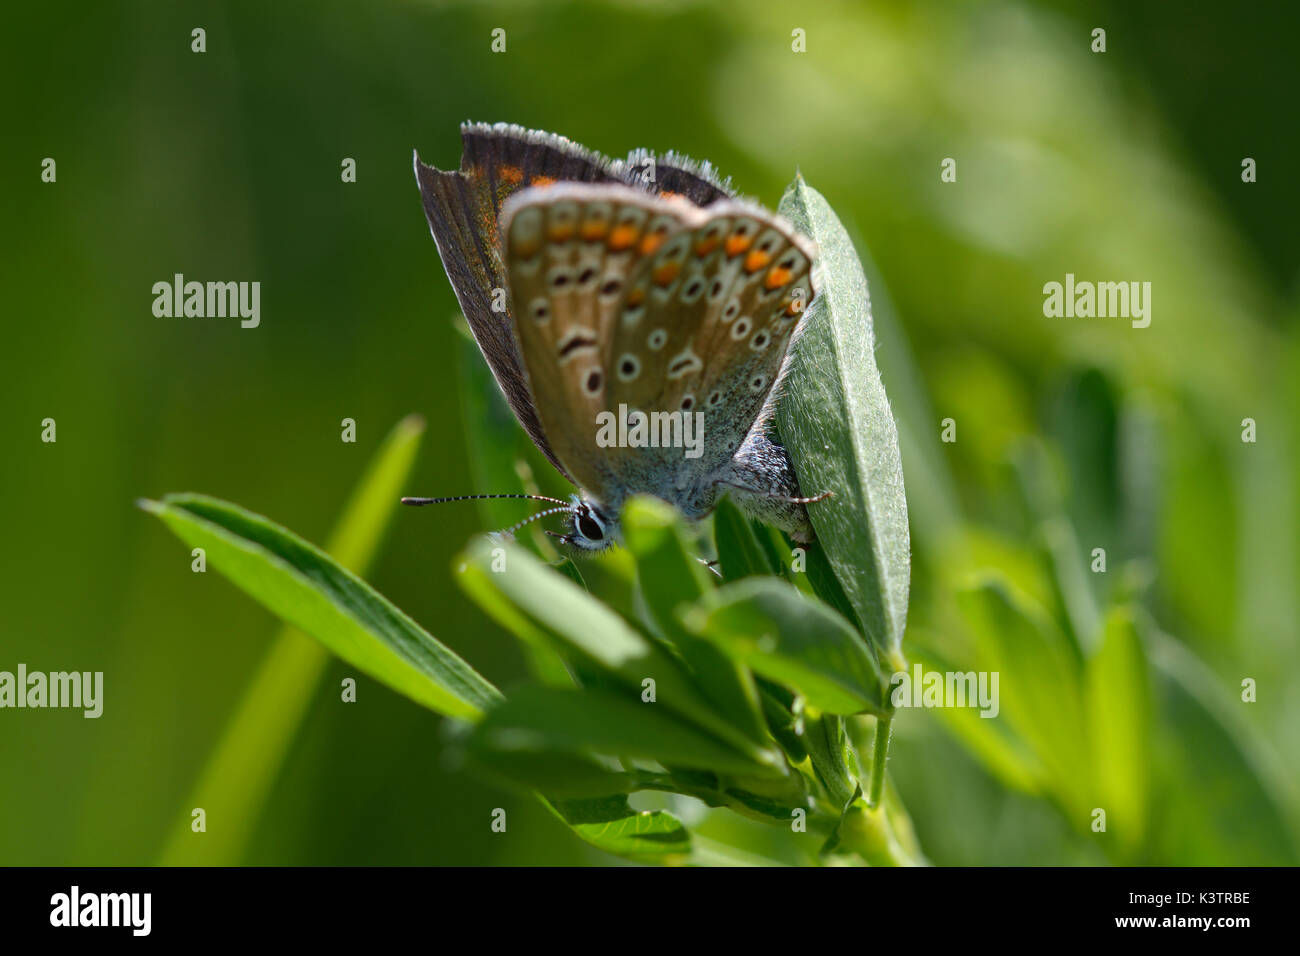 A butterfly the brown argus, Aricia agestis, laying eggs in grass. - Stock Image